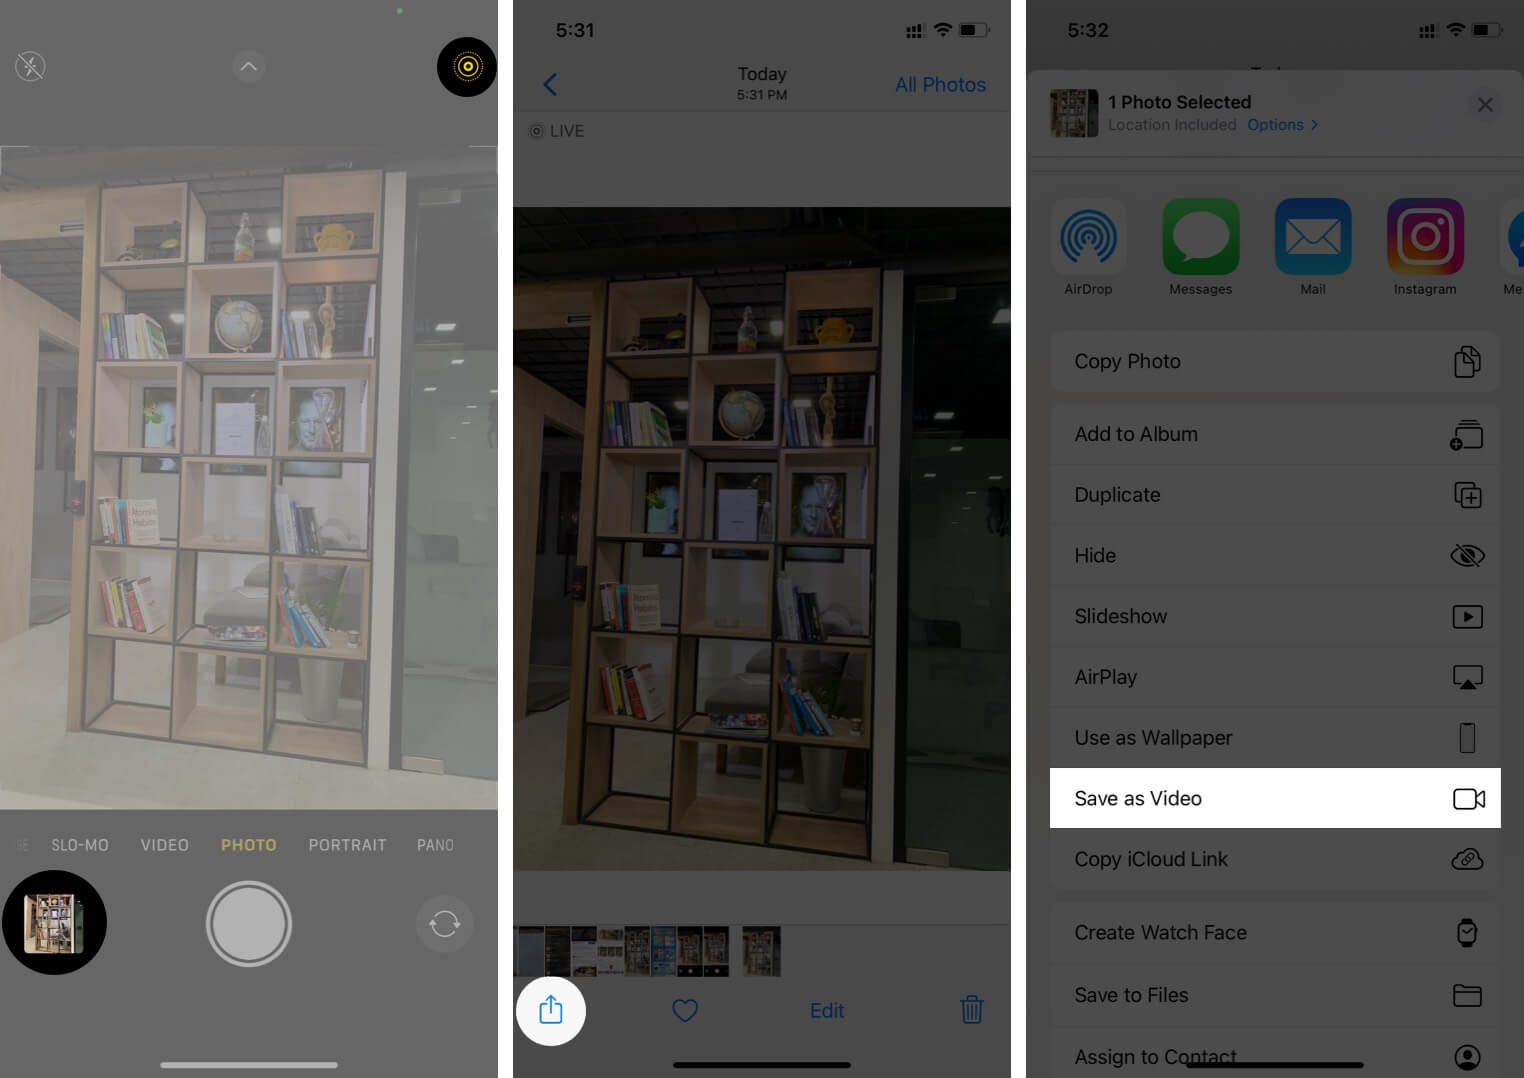 Enable Live Photo Tap on Preview and Tap on Share Then Tap on Save as Video on iPhone